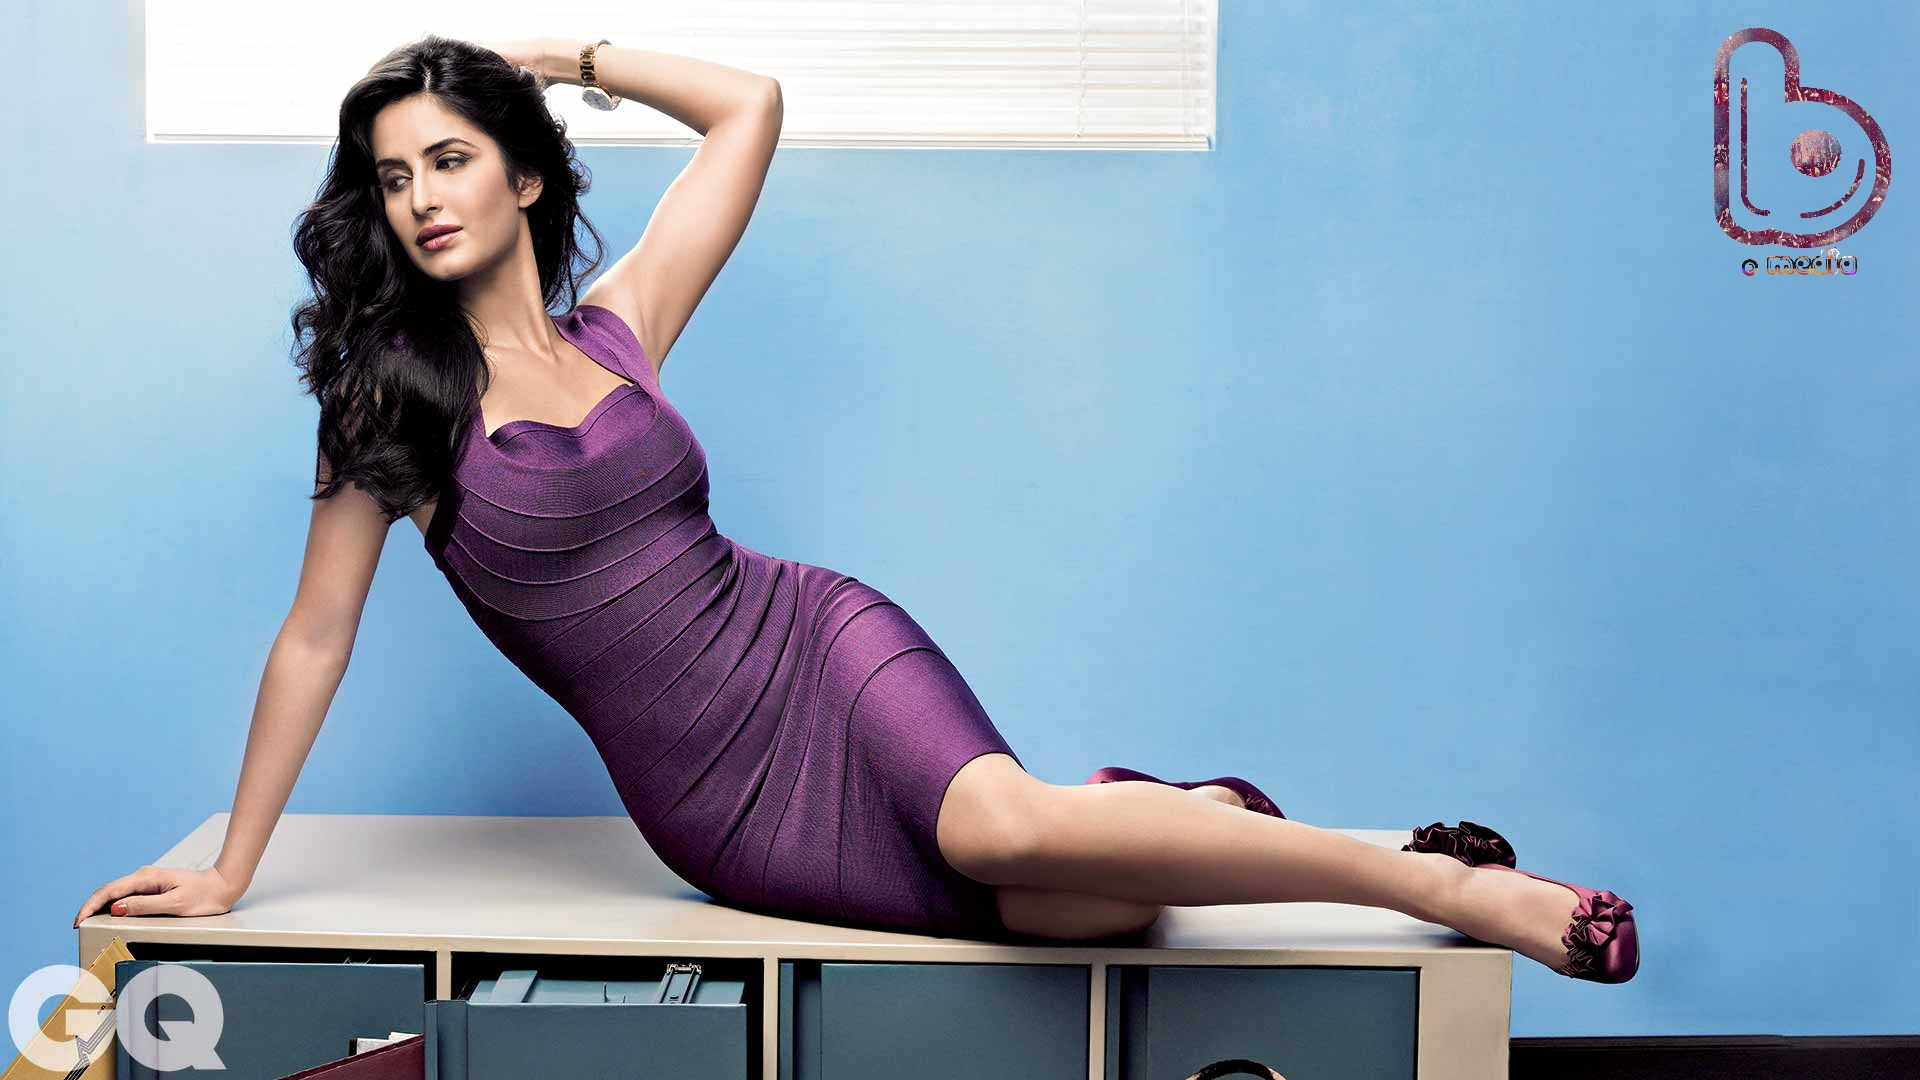 Katrina Kaif steams up the cover of GQ India's latest issue!